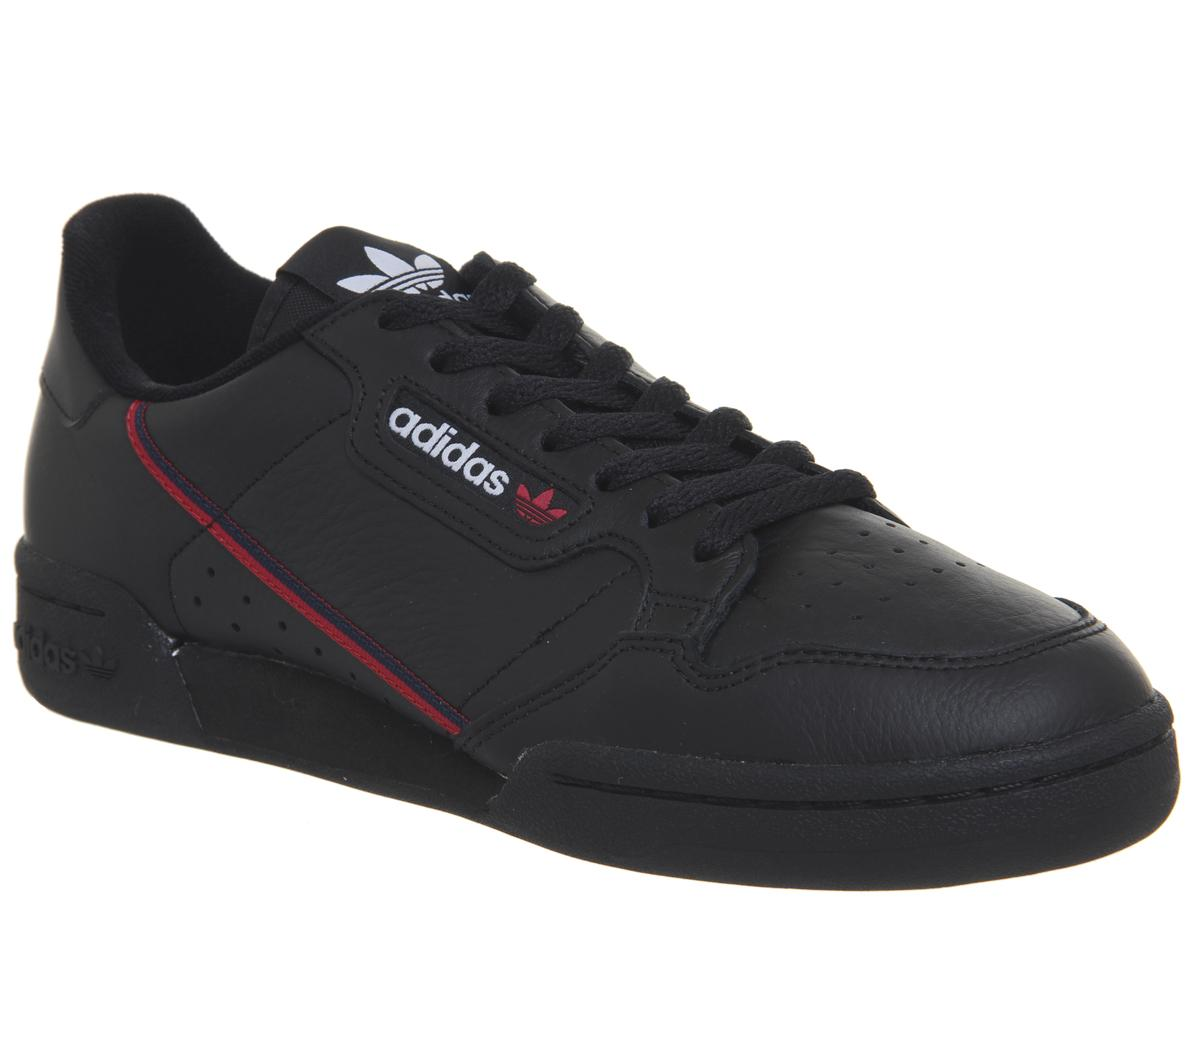 adidas Continental 80s Trainers Core